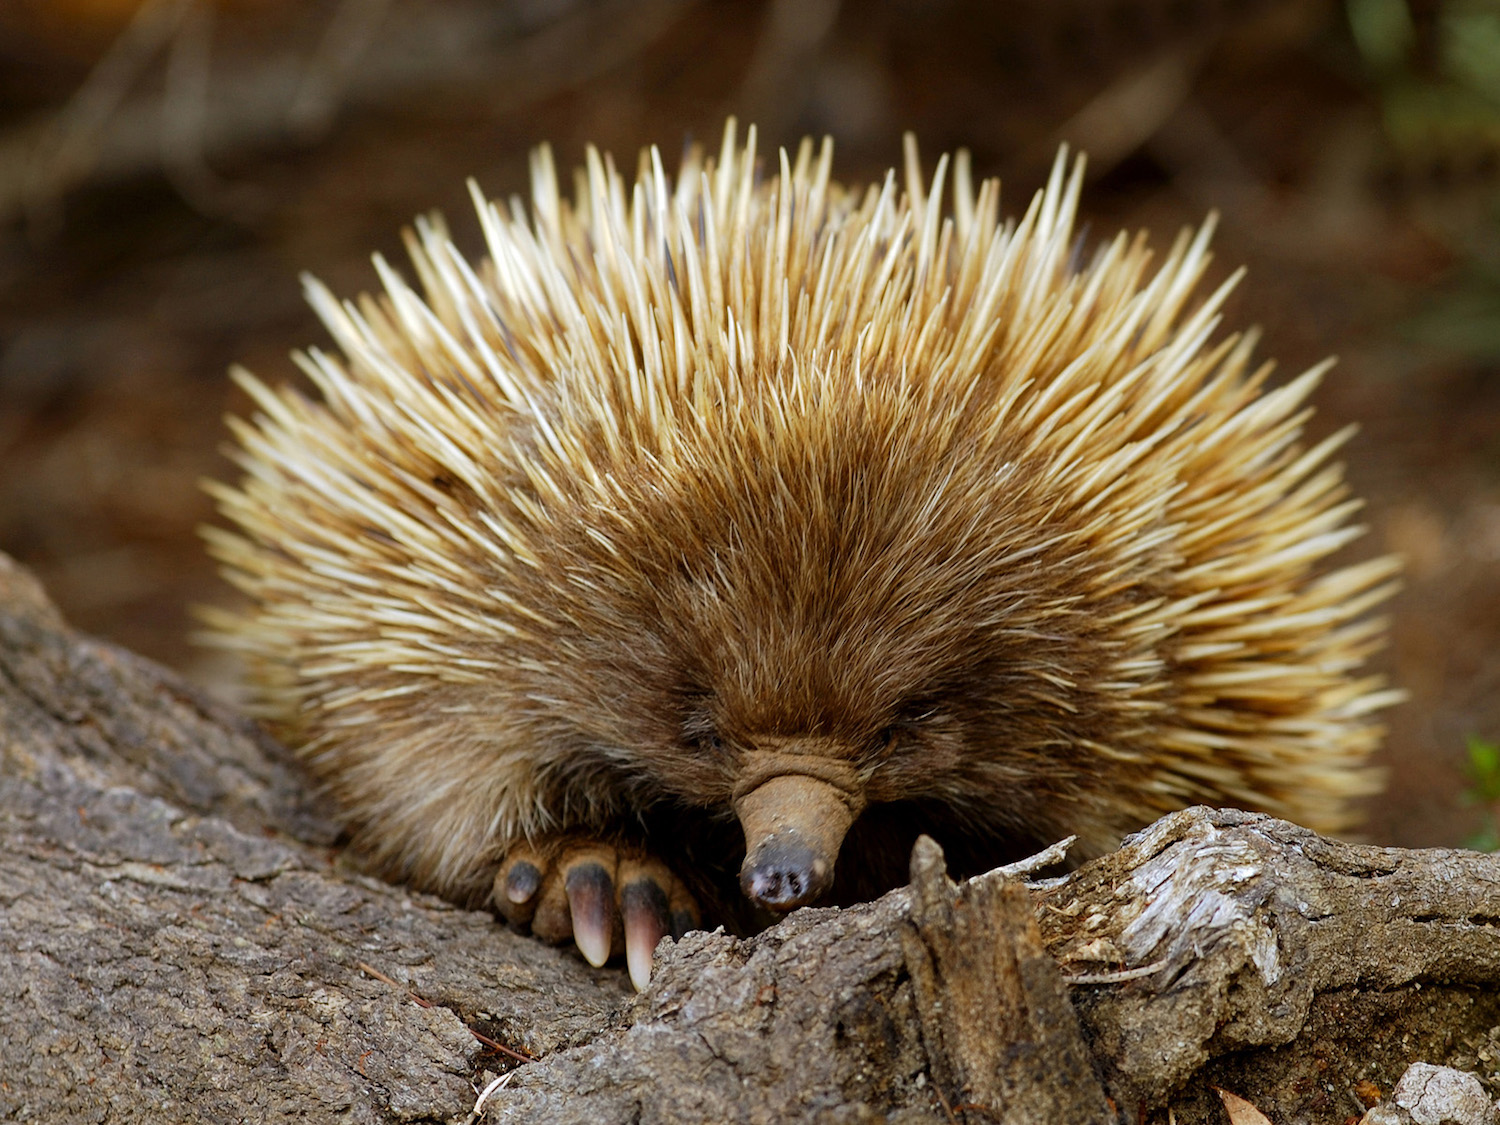 Visit an ecotourism project for the Short-nosed Echidna on Kangaroo Island, South Australia